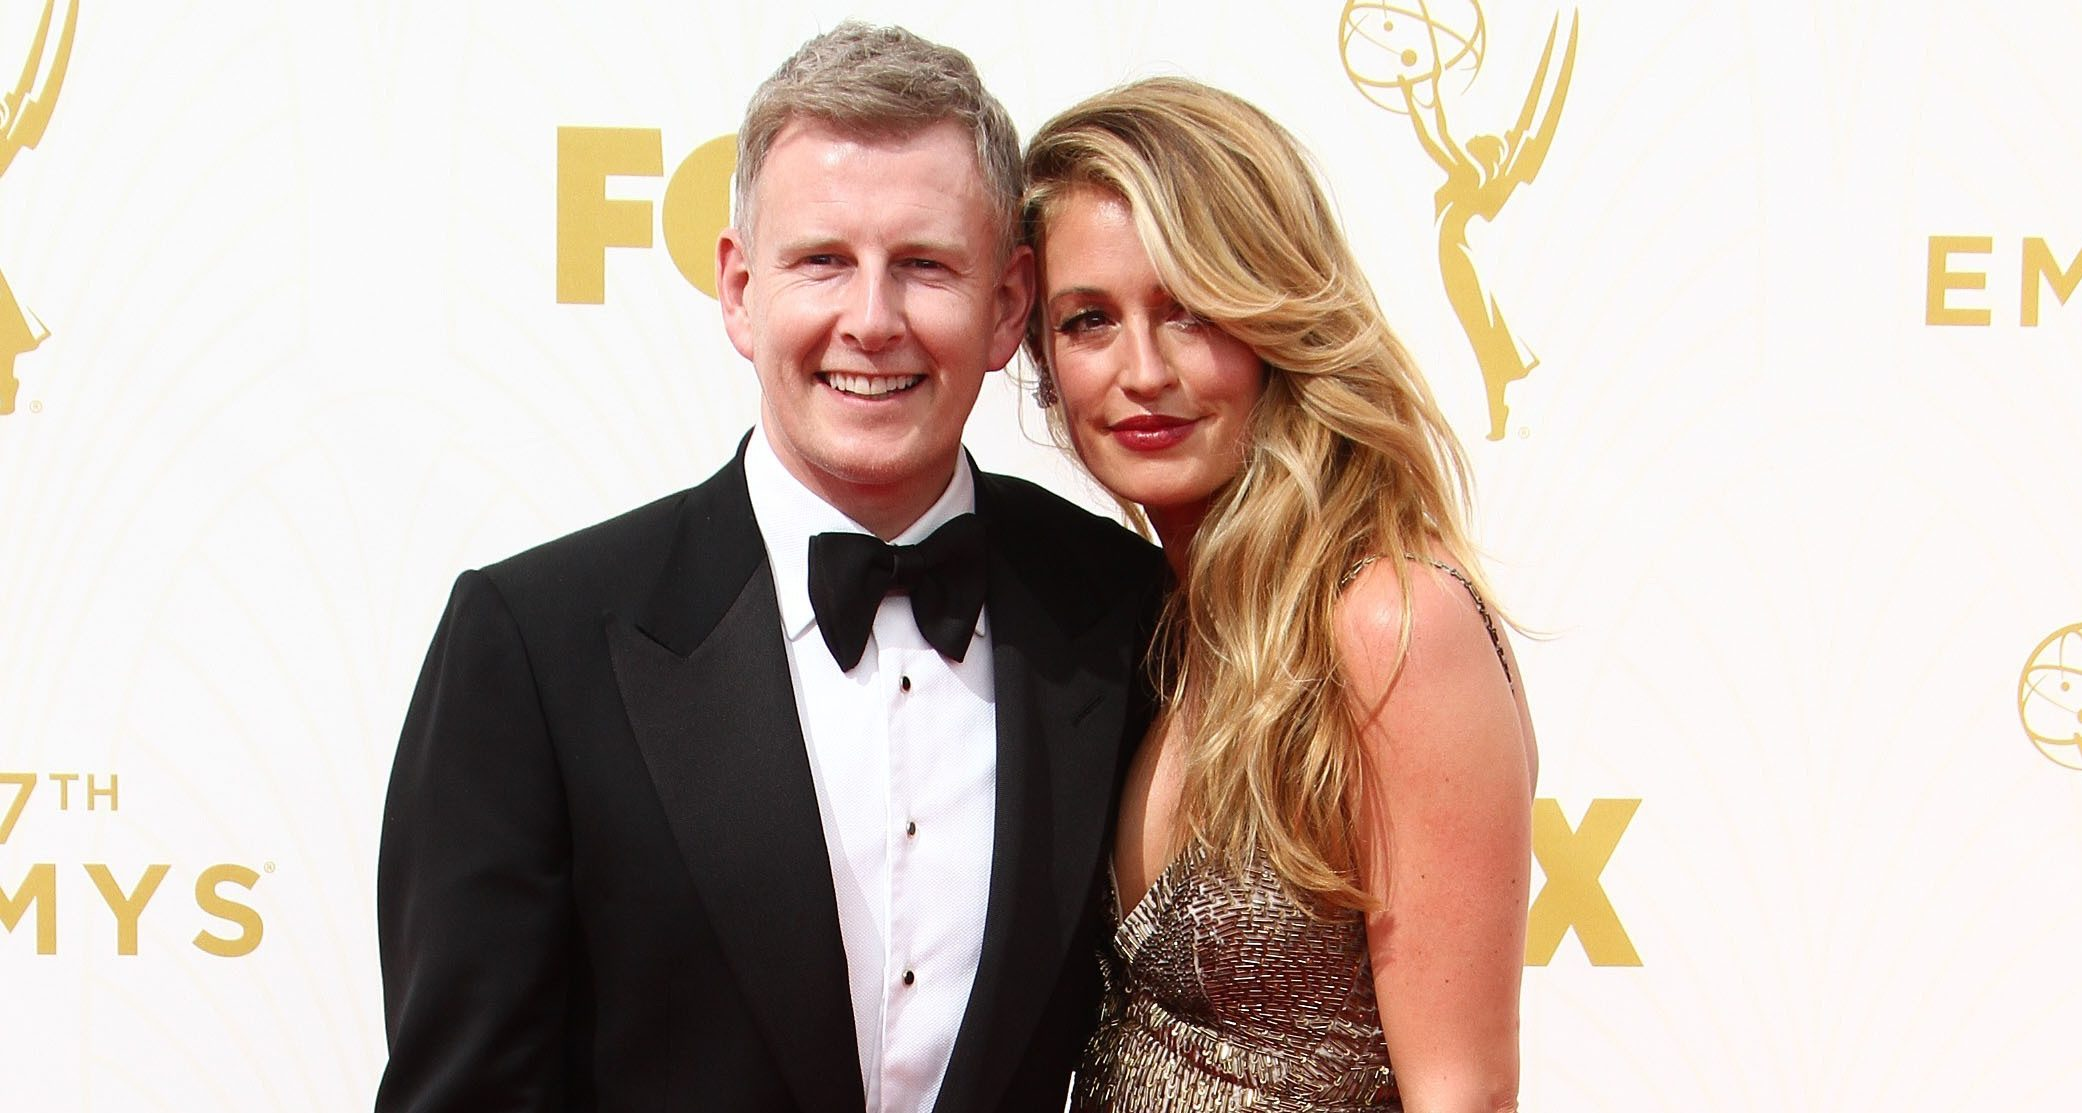 Baby number 2 for Cat Deeley and Patrick Kielty